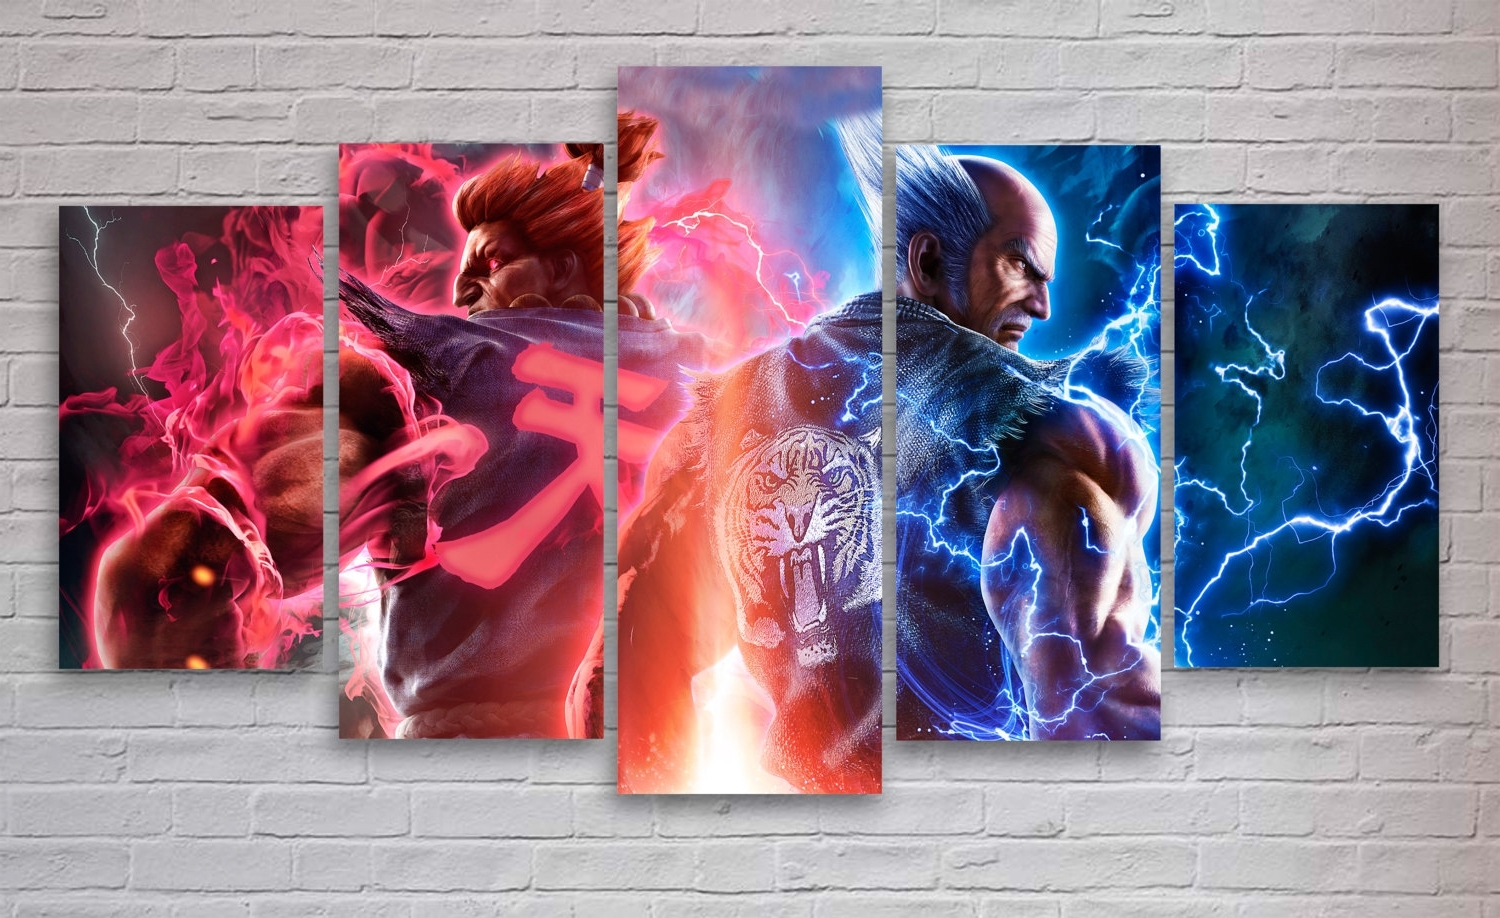 Trendy Tekken 7 Gaming 5 Panel / Piece Canvas – Wall Art – Office With Regard To Gaming Canvas Wall Art (Gallery 4 of 15)